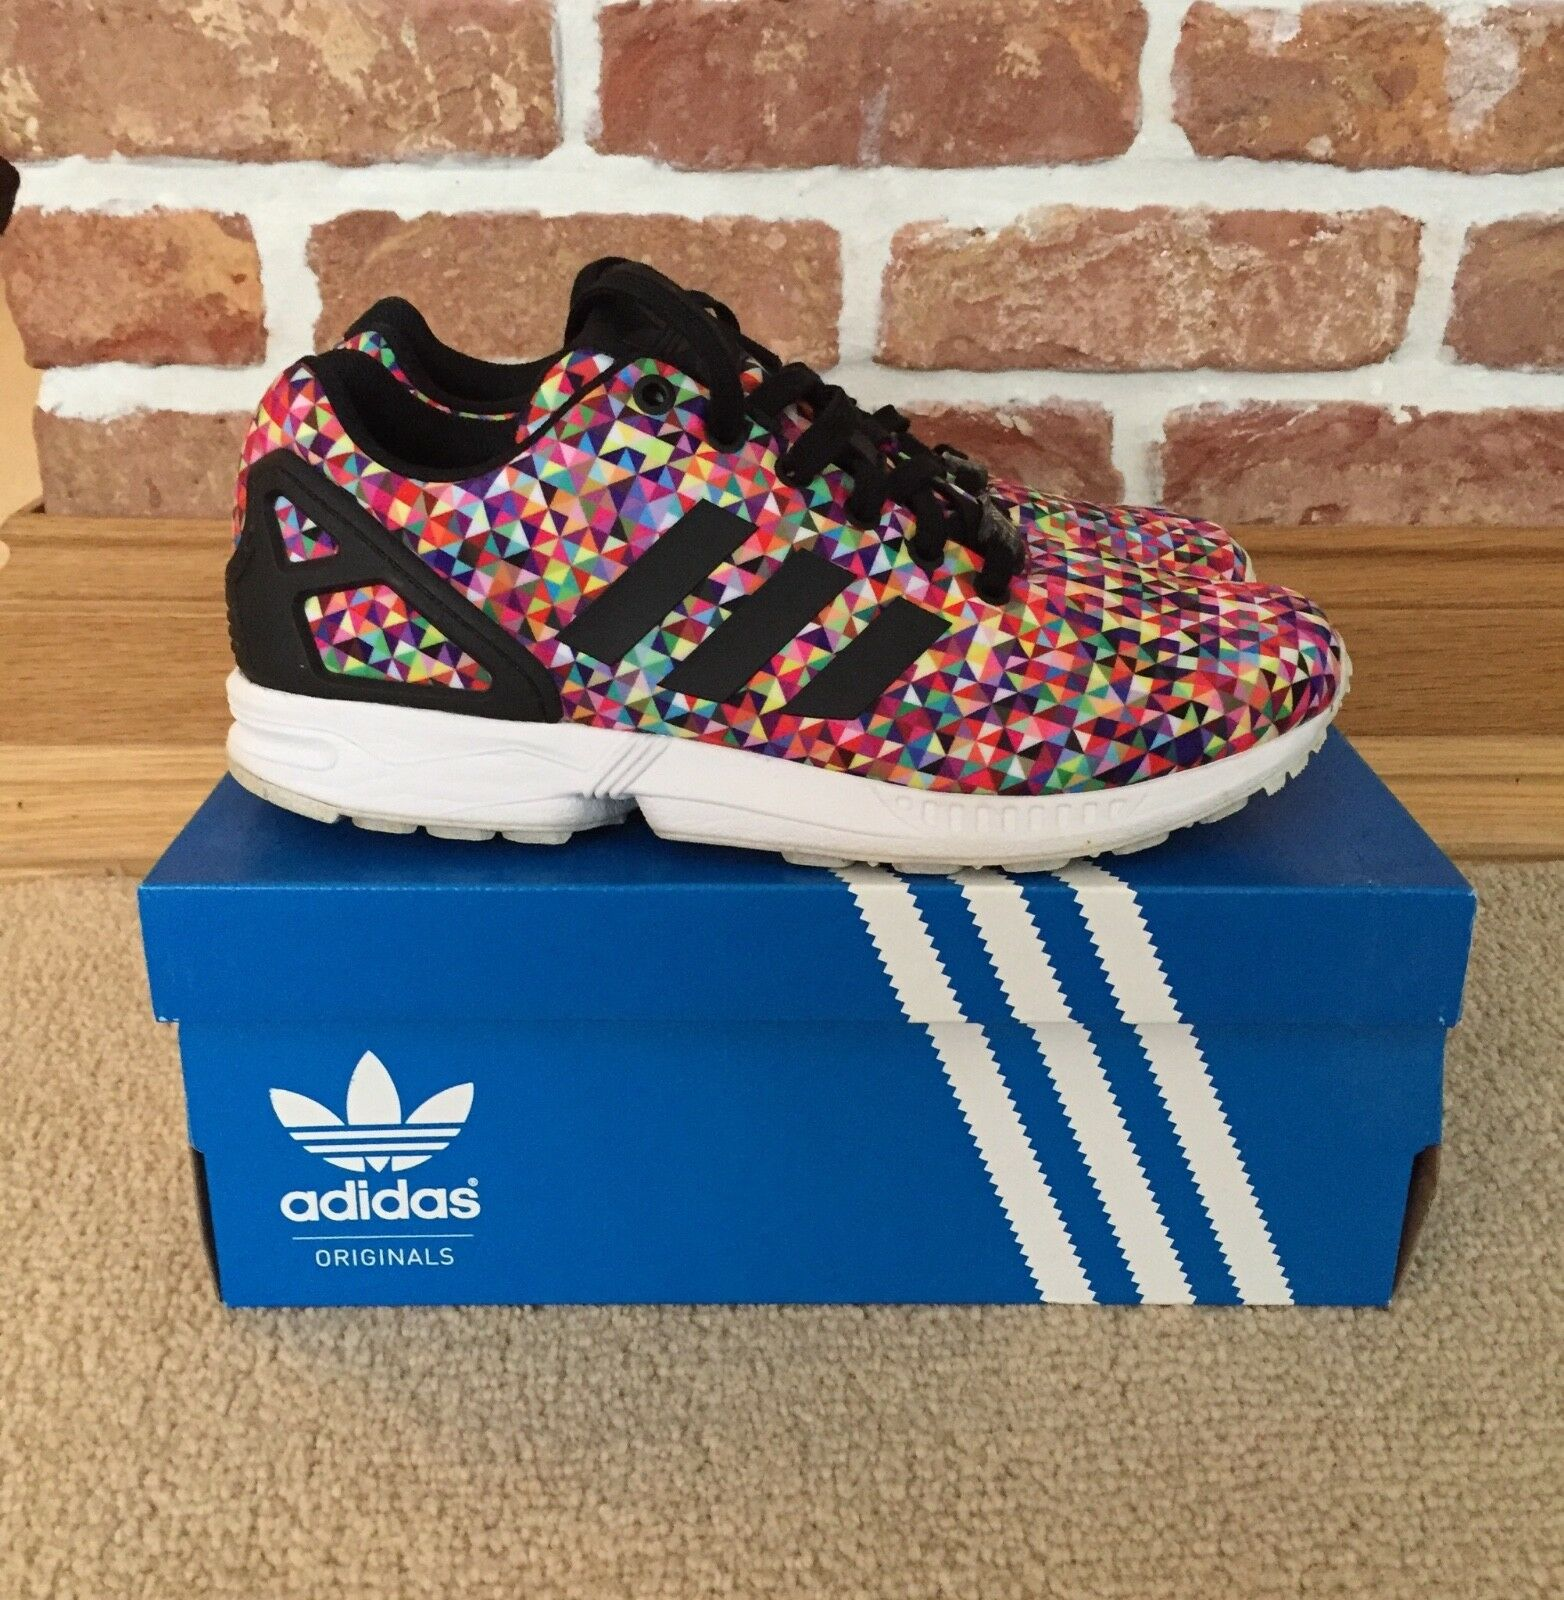 2013 limitata Adidas Torsion ZX Flux OG PRISMA